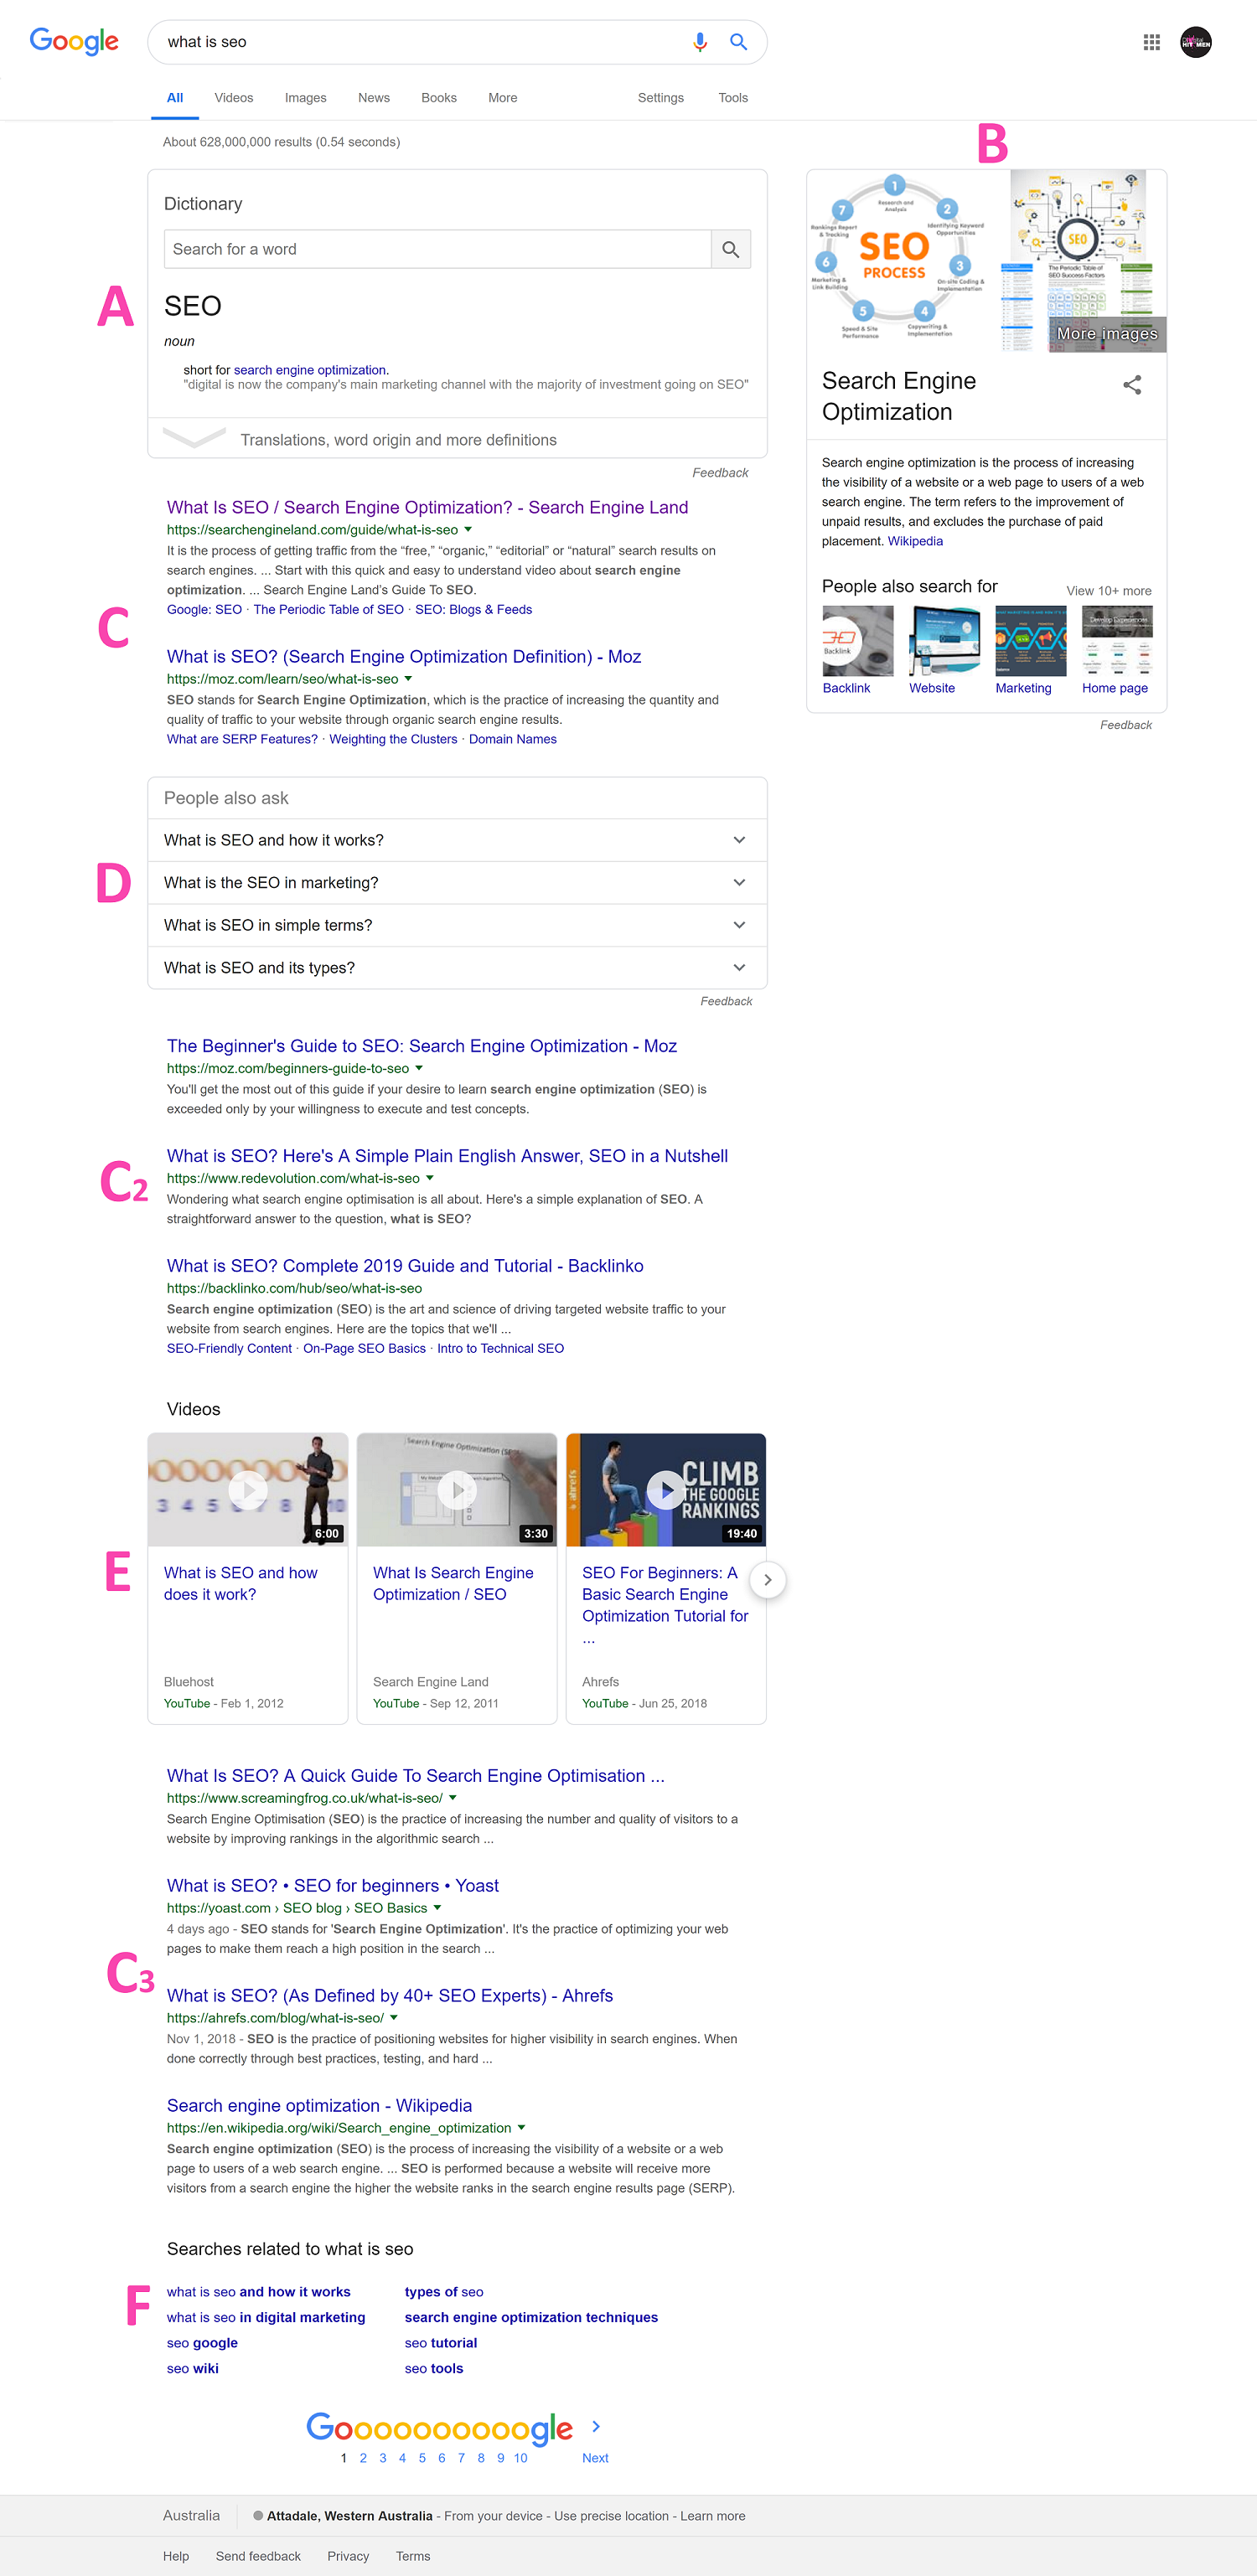 The Search Engine Results Page